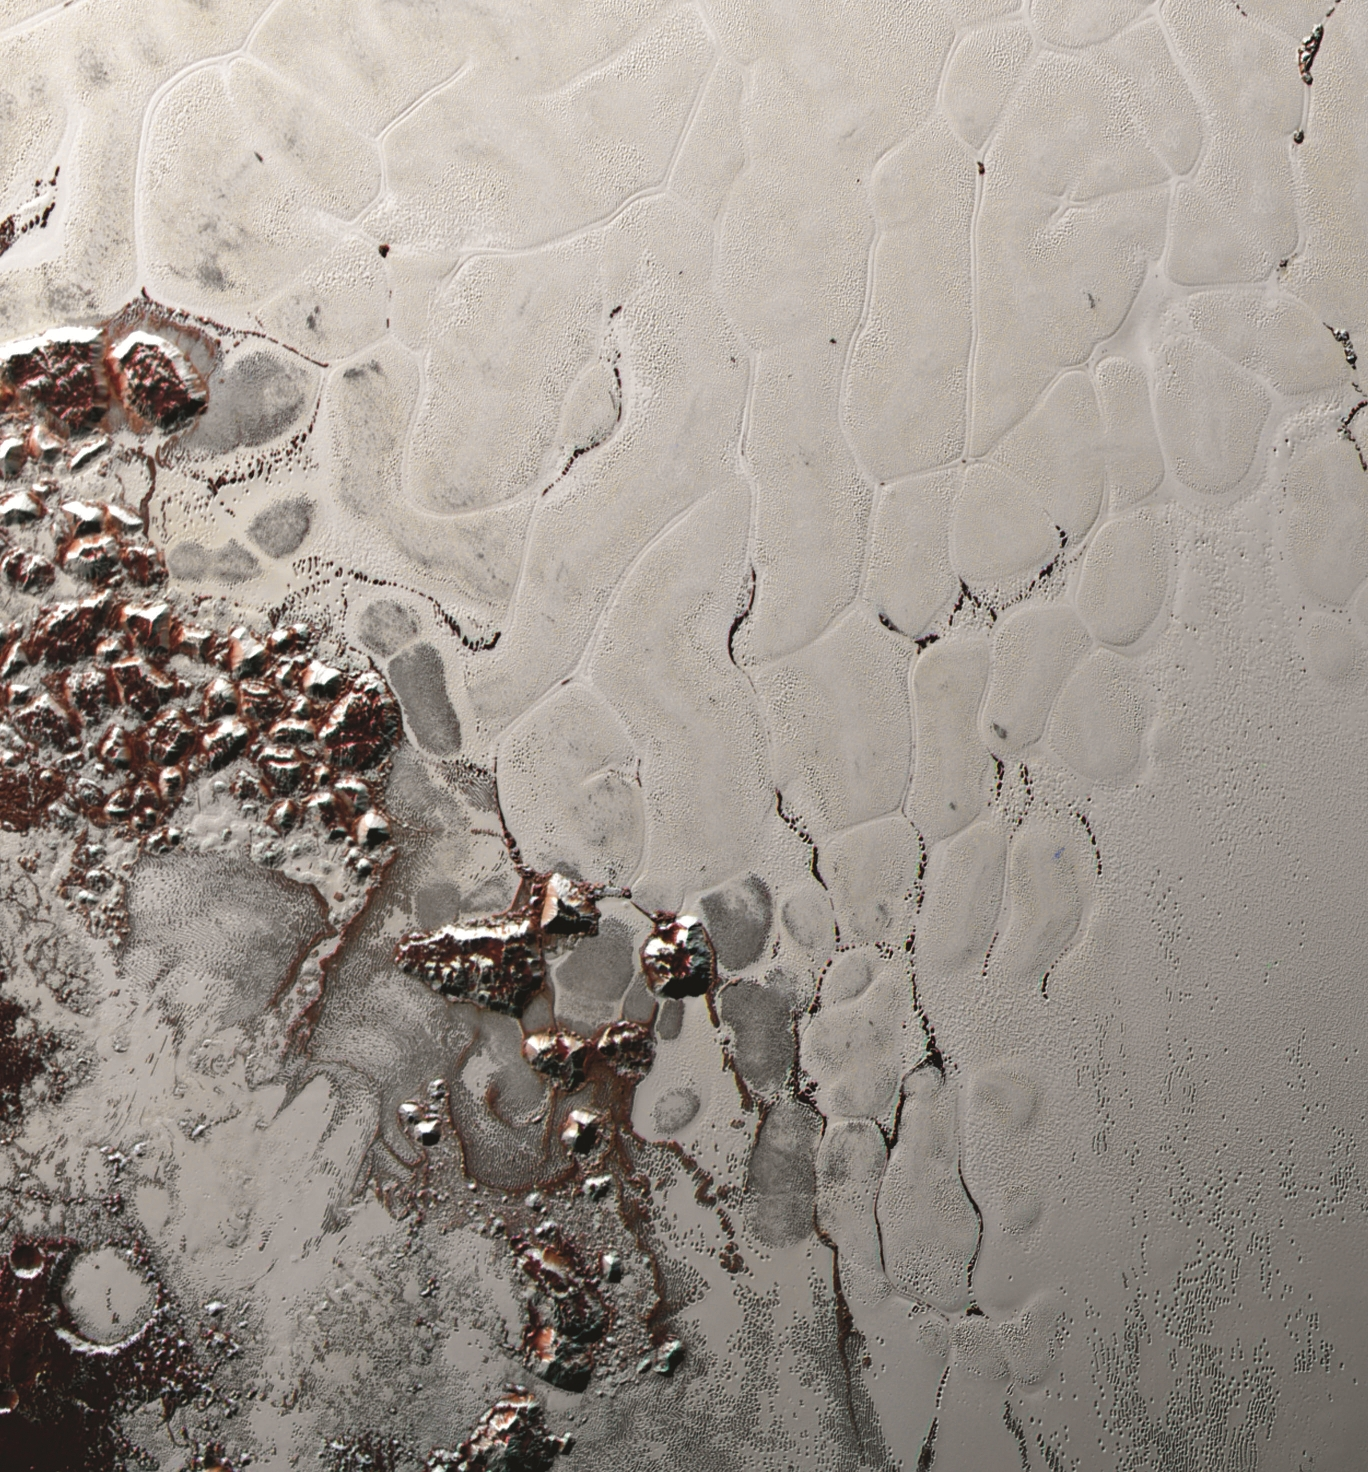 View of ice field on Pluto from New Horizons